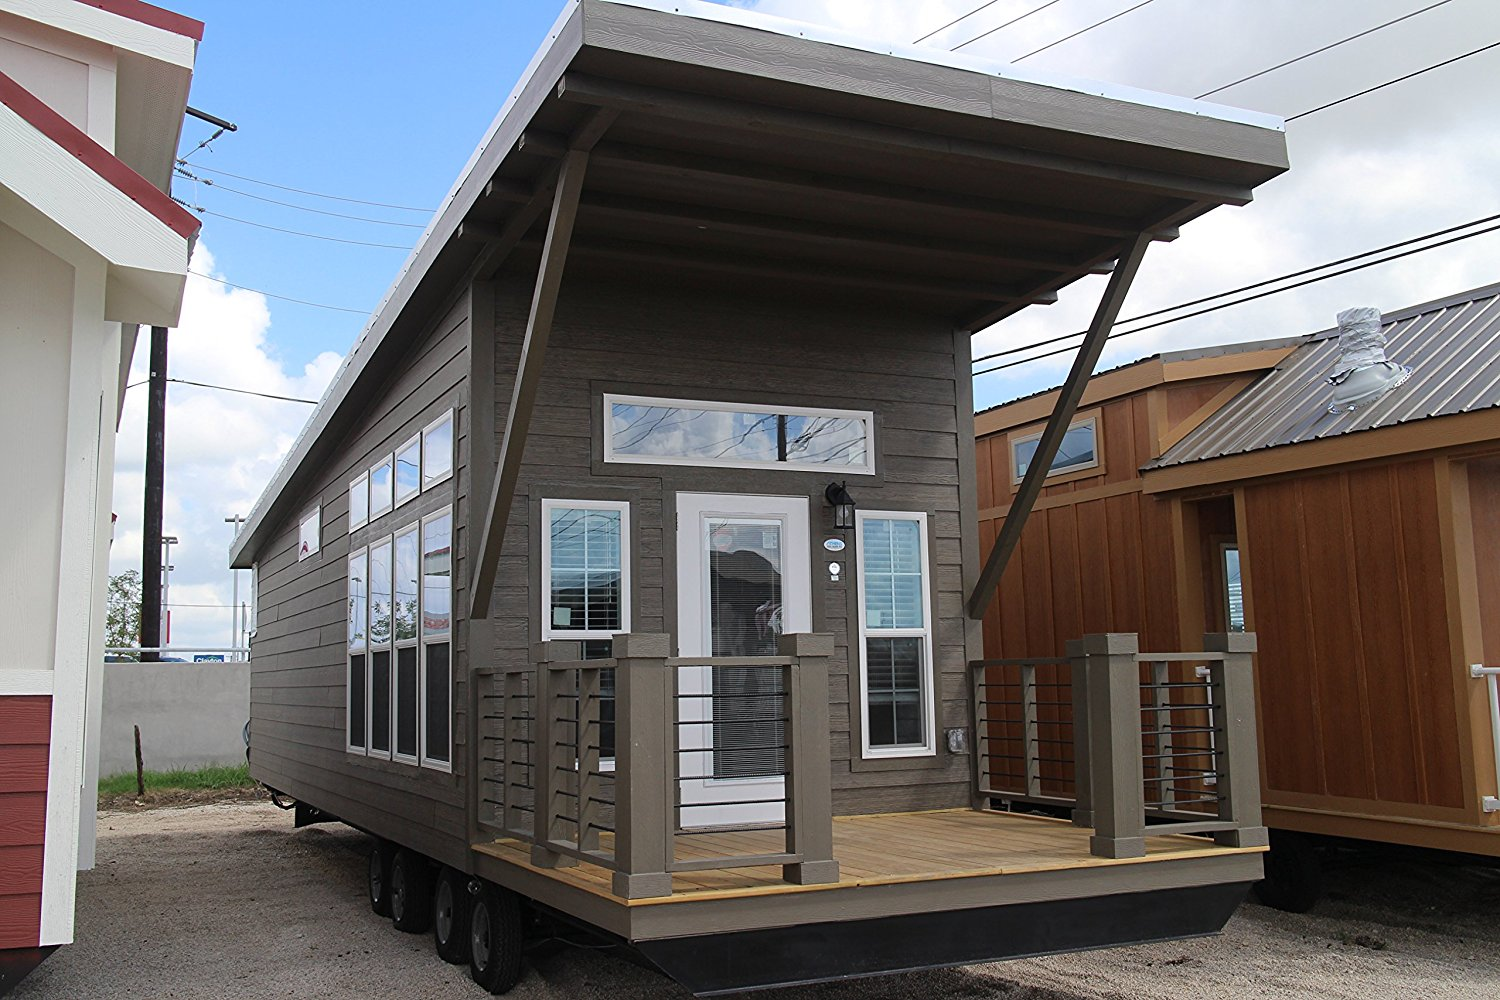 The Best Tiny Houses Available on Amazon: RV Style tiny home